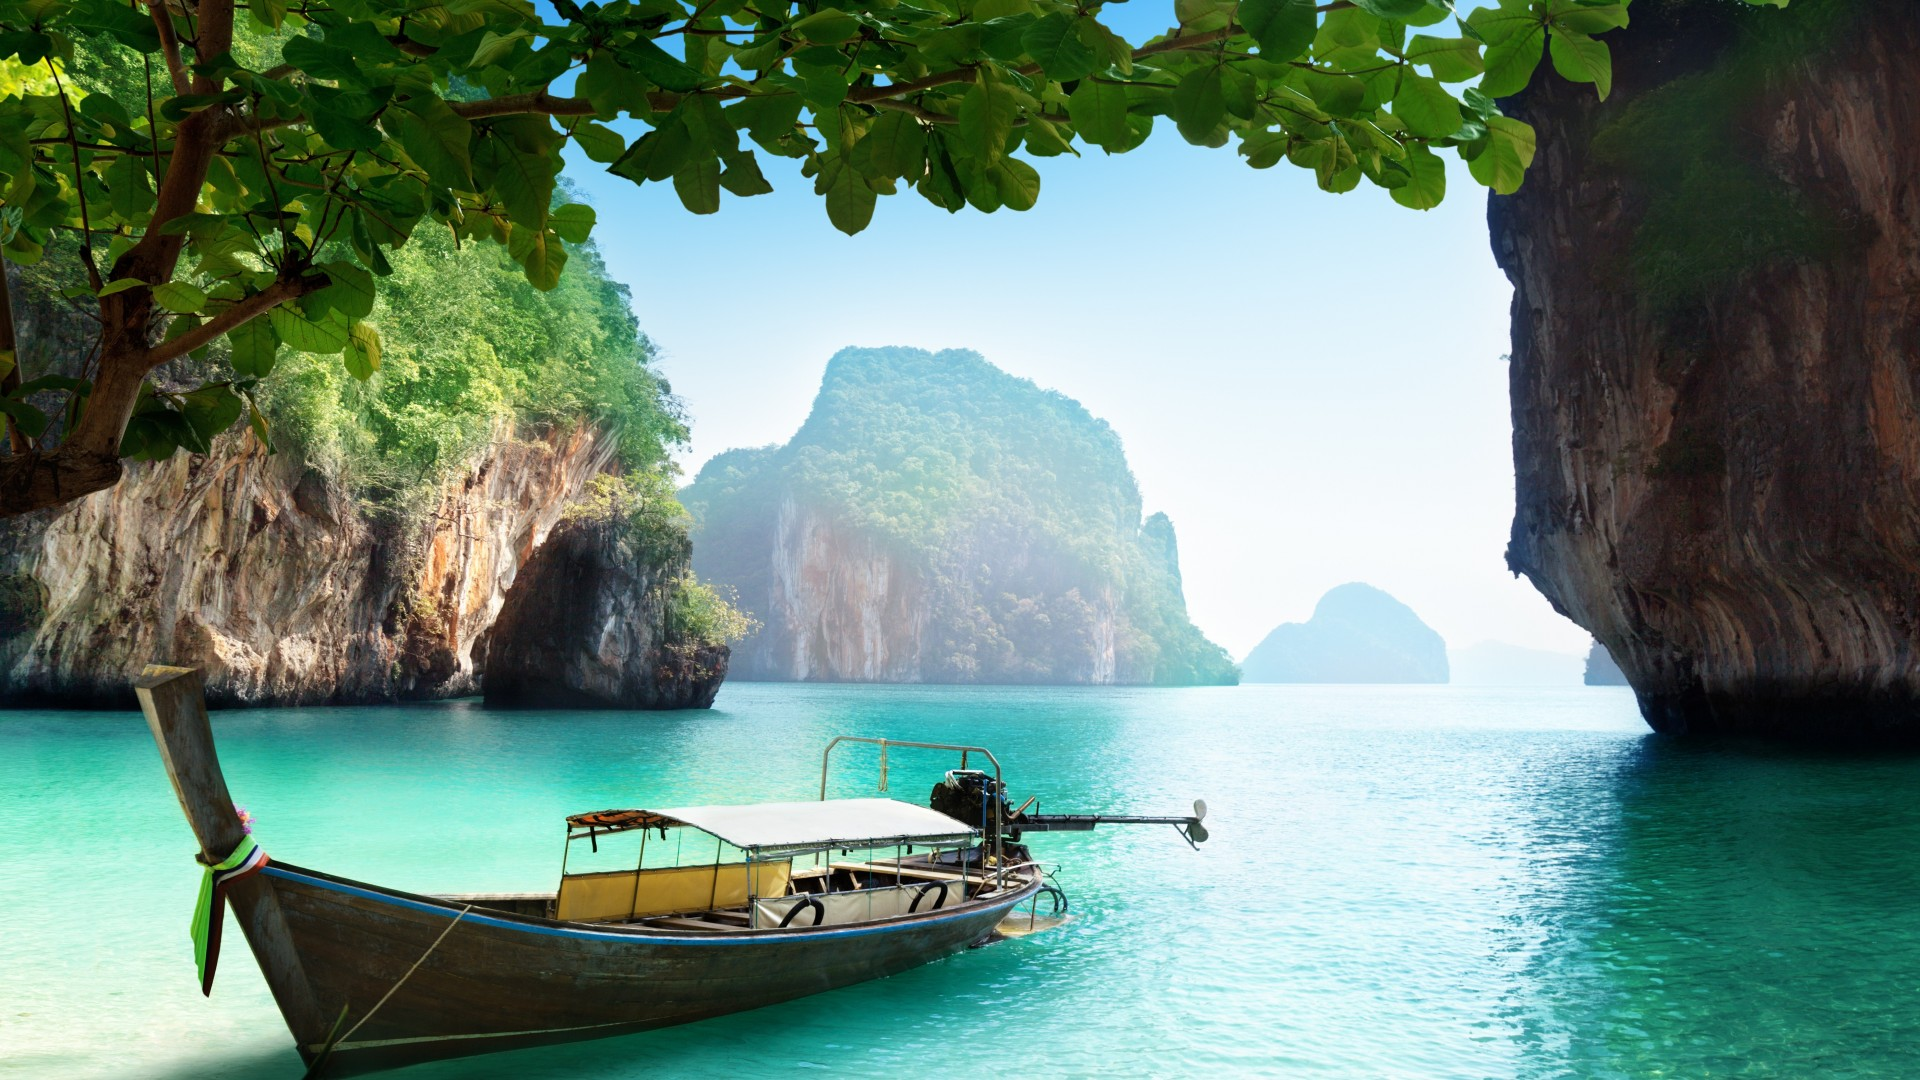 Thailand wallpapers best wallpapers for Thai wallpaper gallery